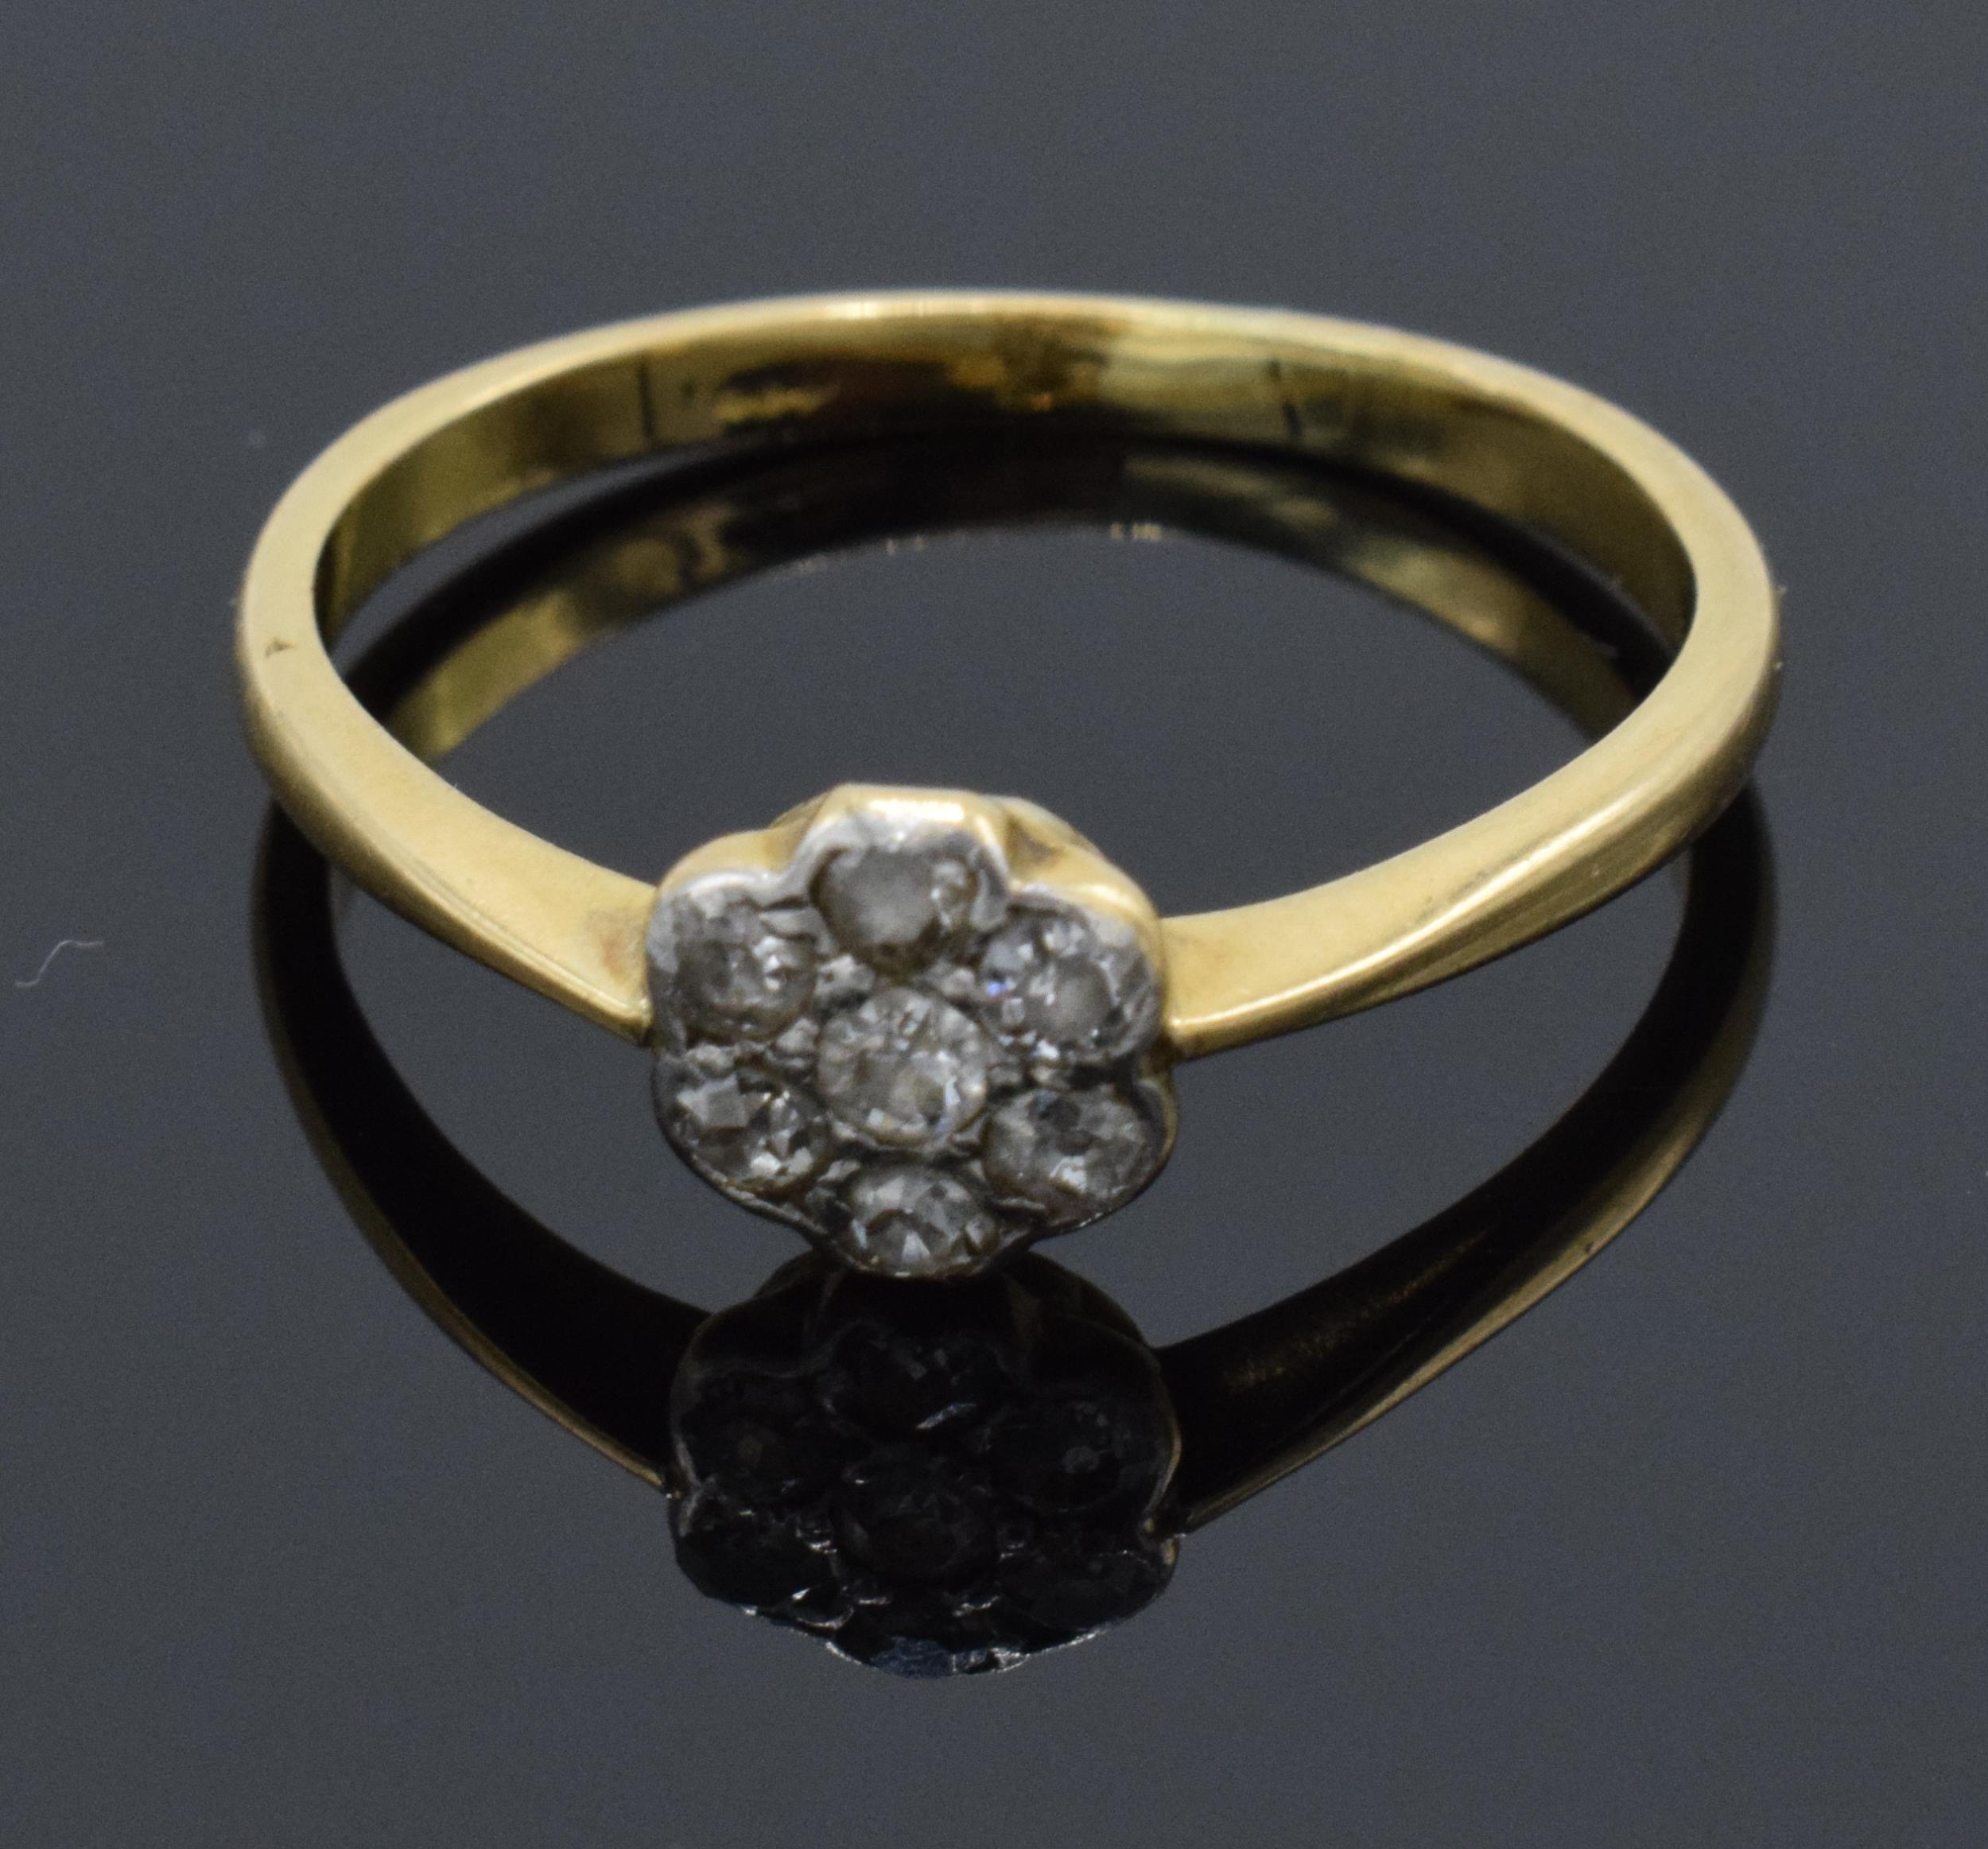 18ct gold daisy ring set with diamonds. UK size O. 2.1 grams. In good condition.